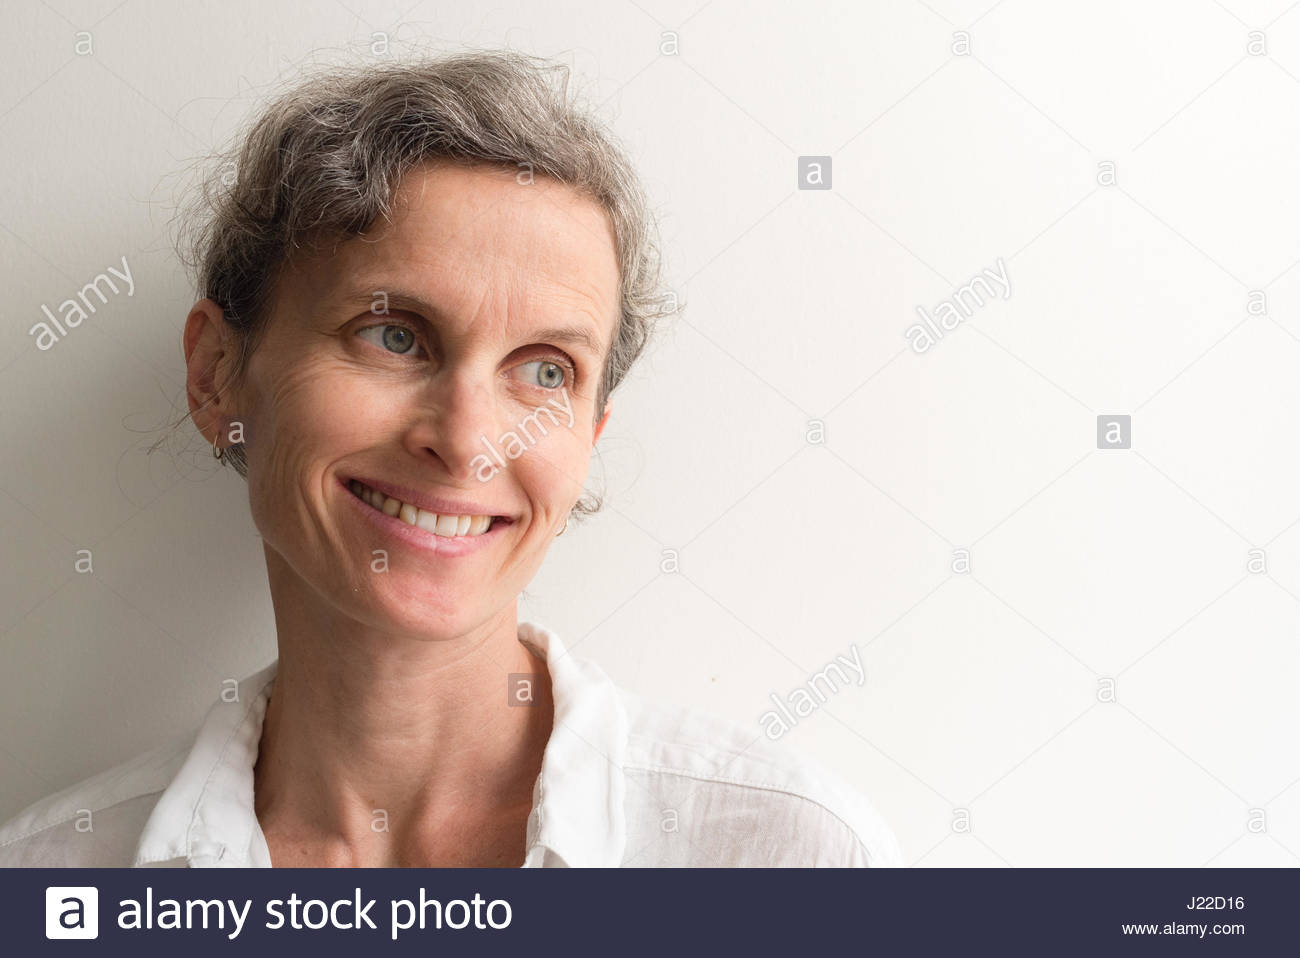 Head and shoulders view of middle aged woman with grey hair smiling (selective focus) - Stock Image